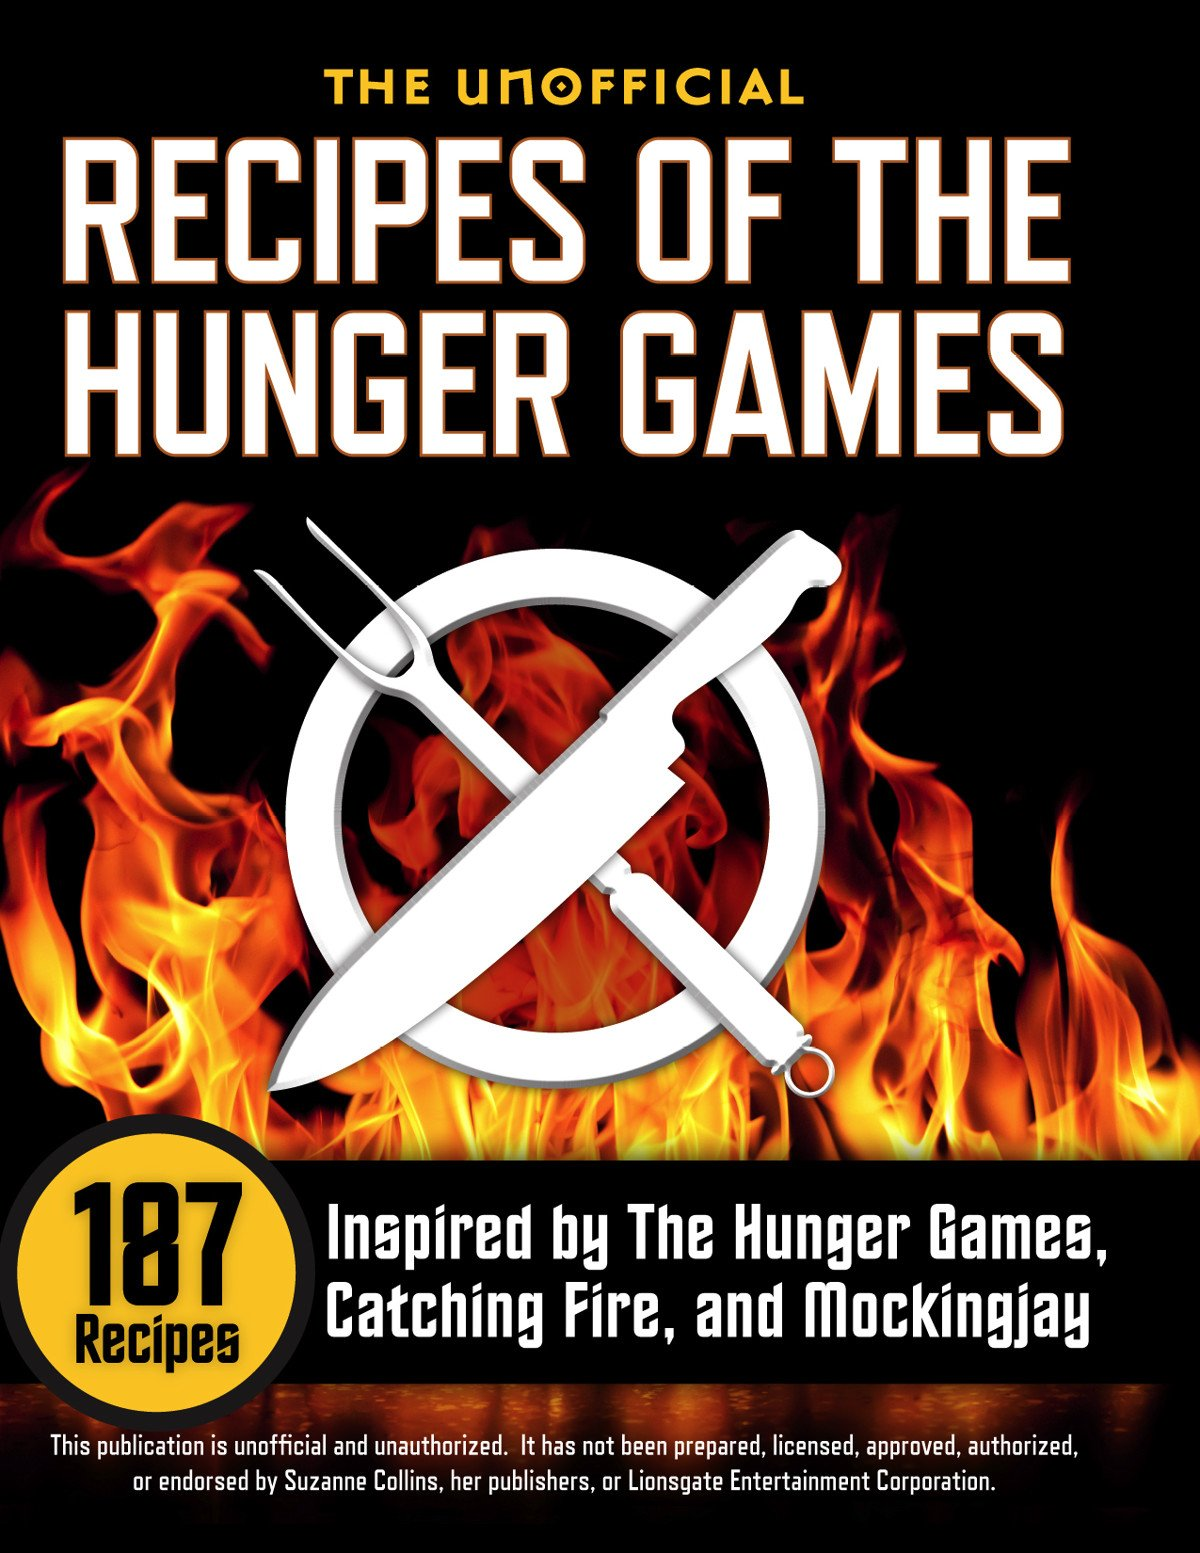 hunger games should not be banned